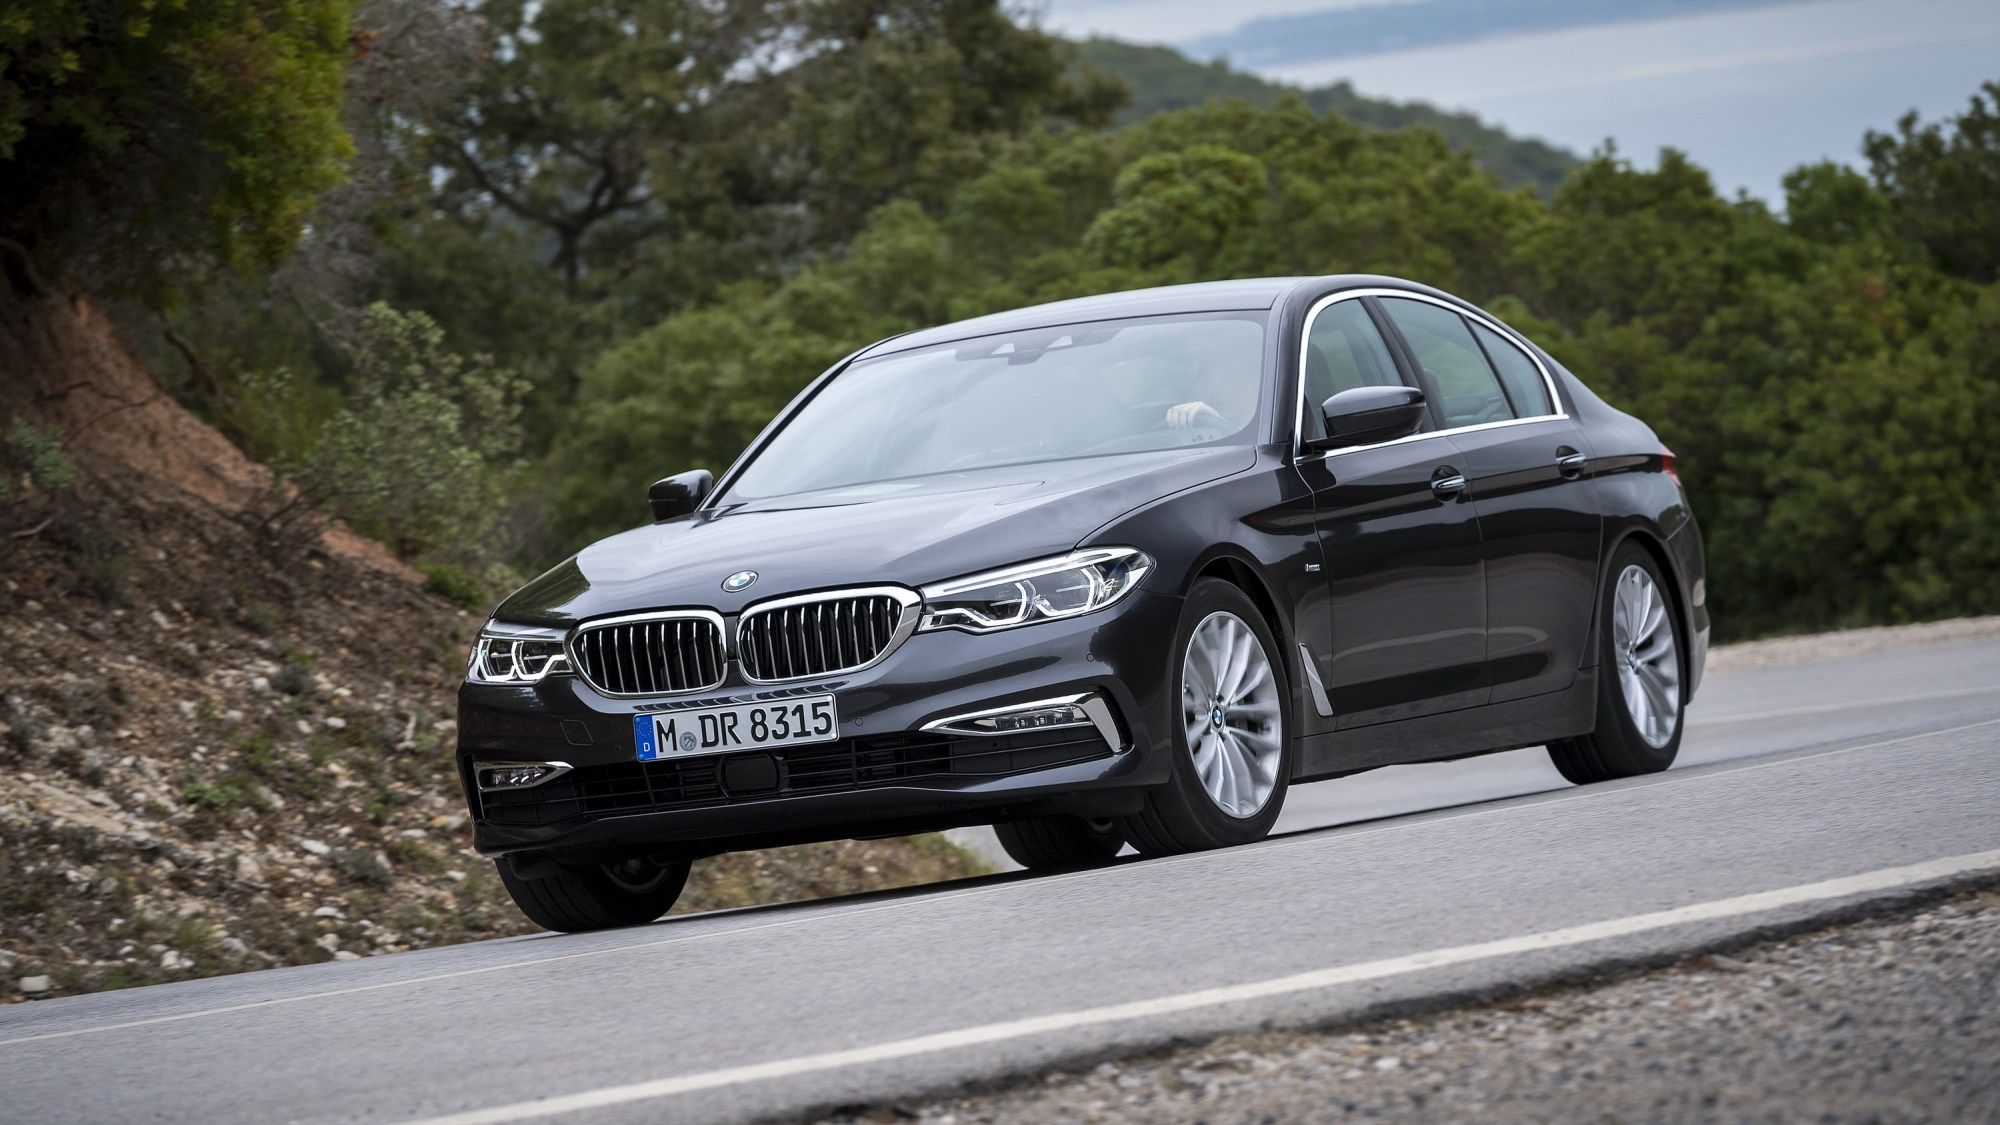 hight resolution of bmw 5 series reviews specs prices photos and videos top speed